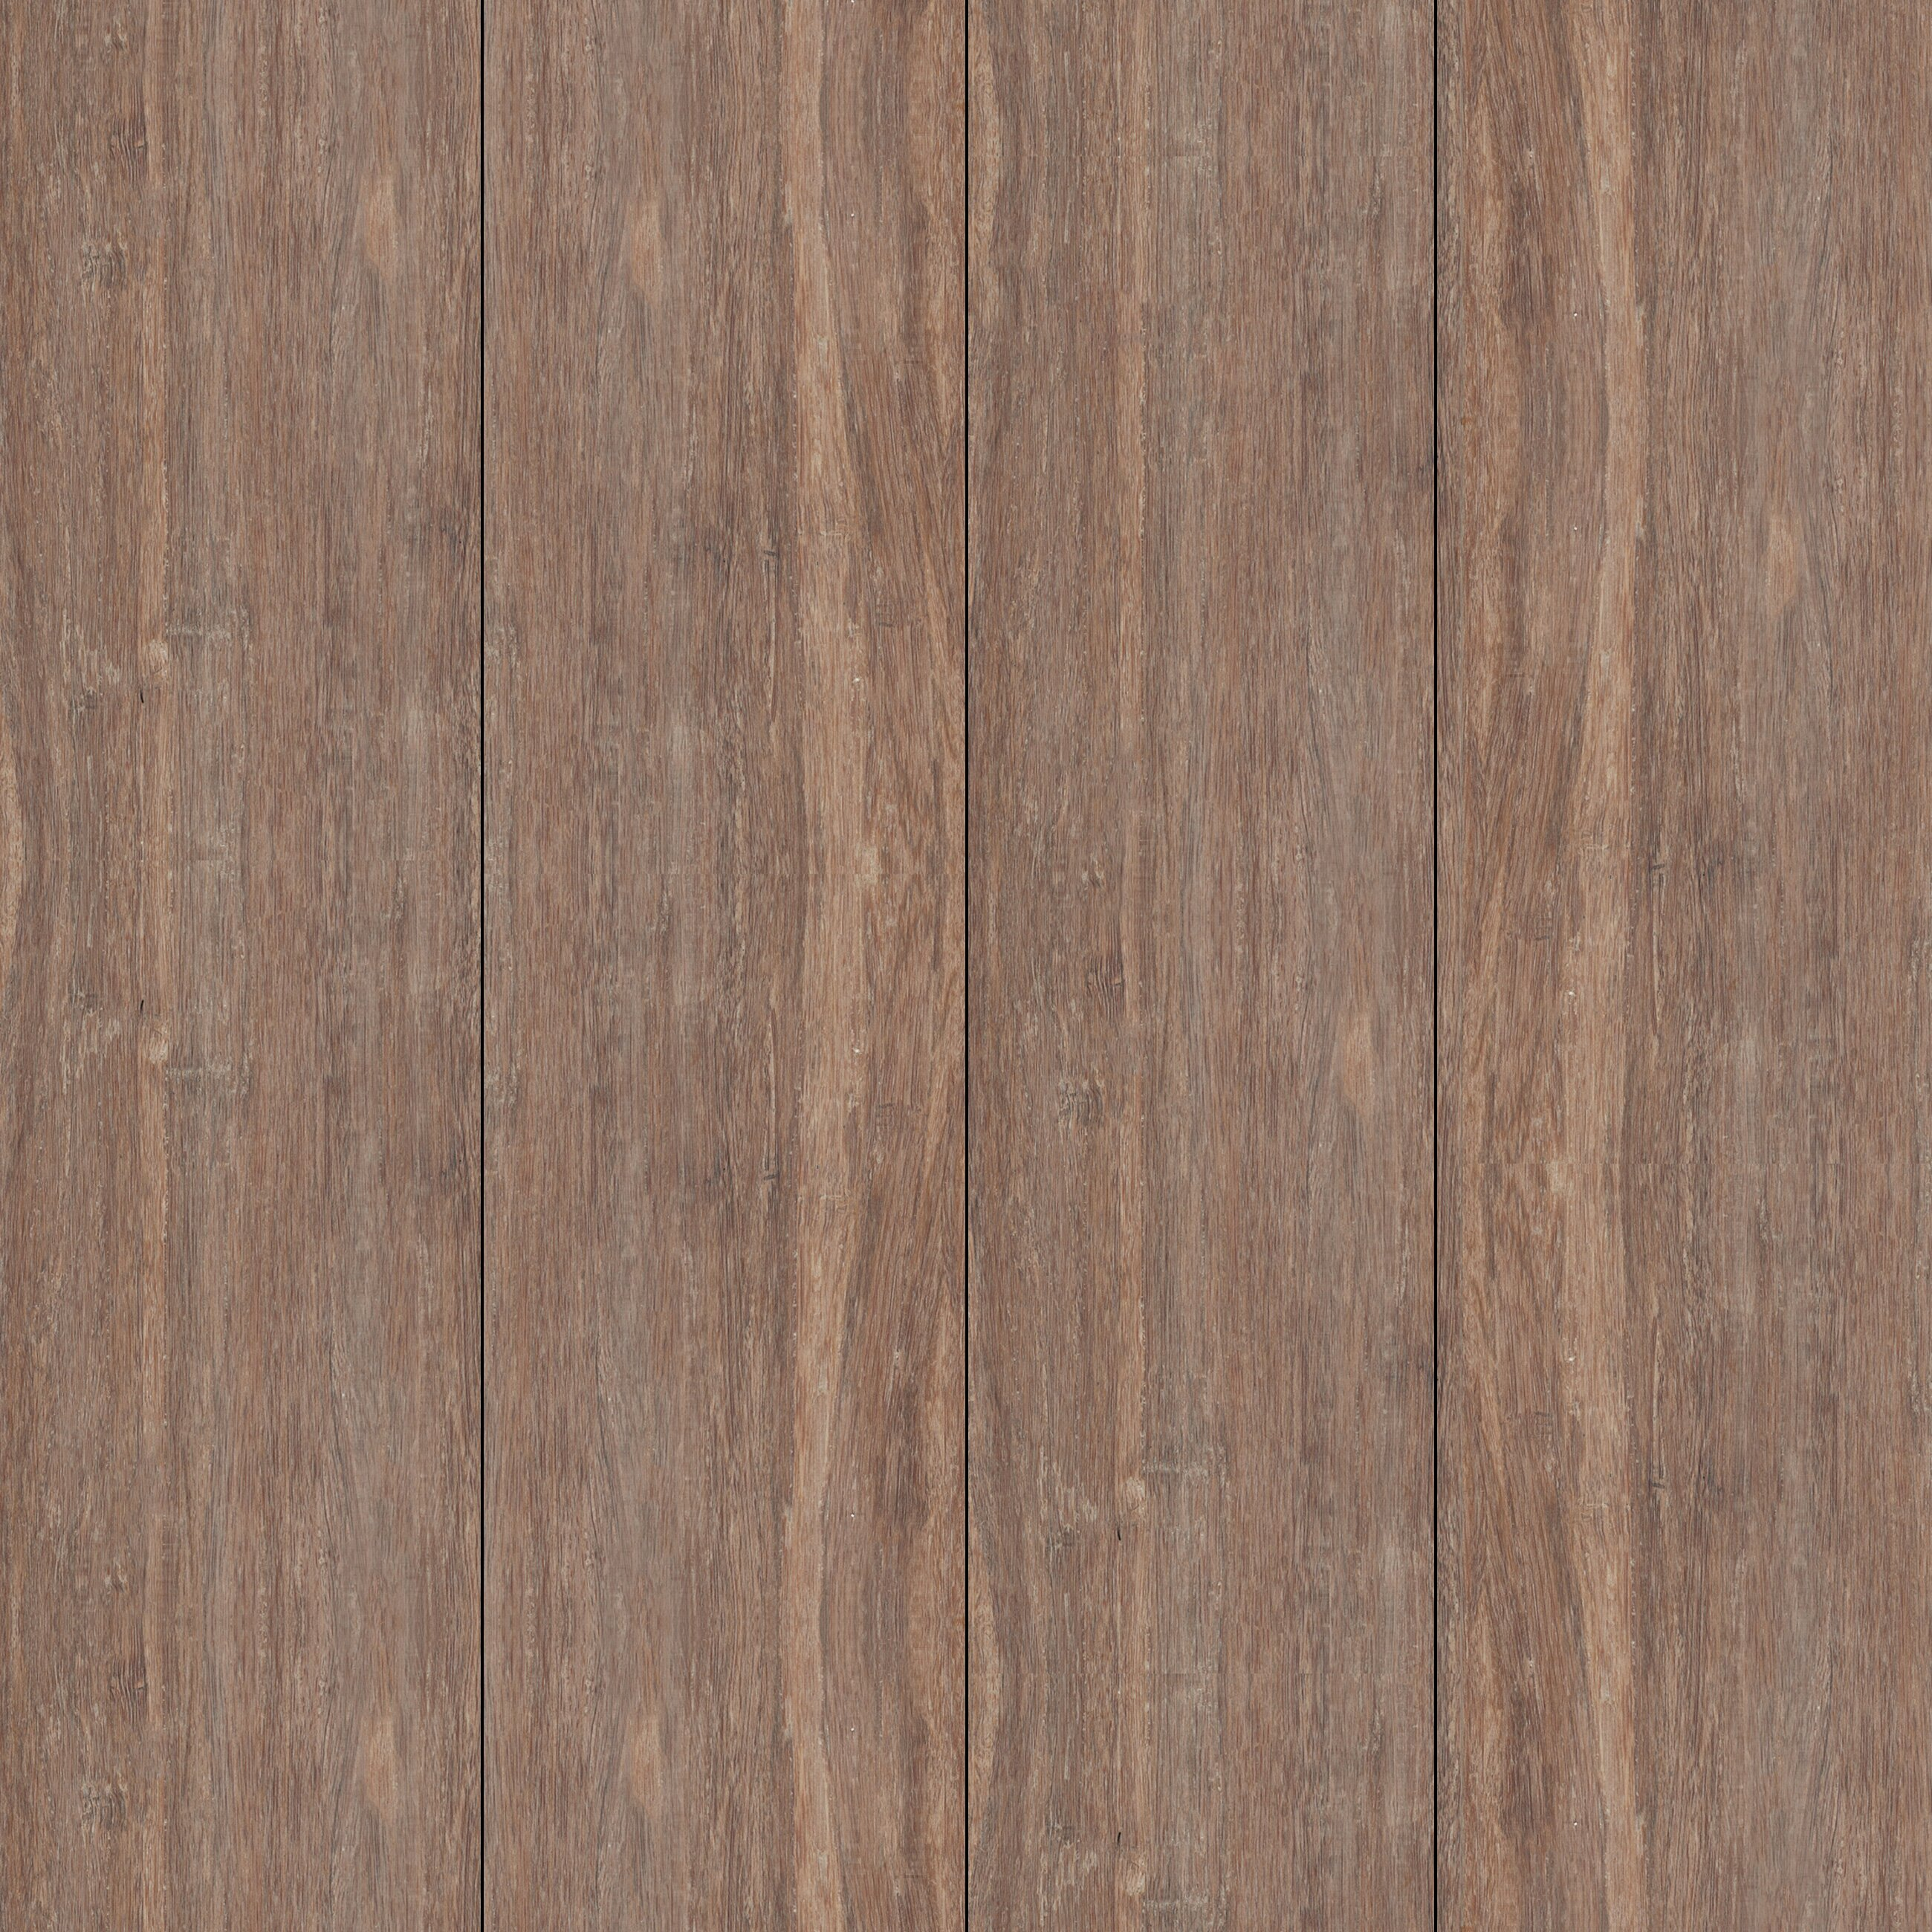 Bamboohardwoods 5 engineered bamboo hardwood flooring in for Engineered bamboo flooring